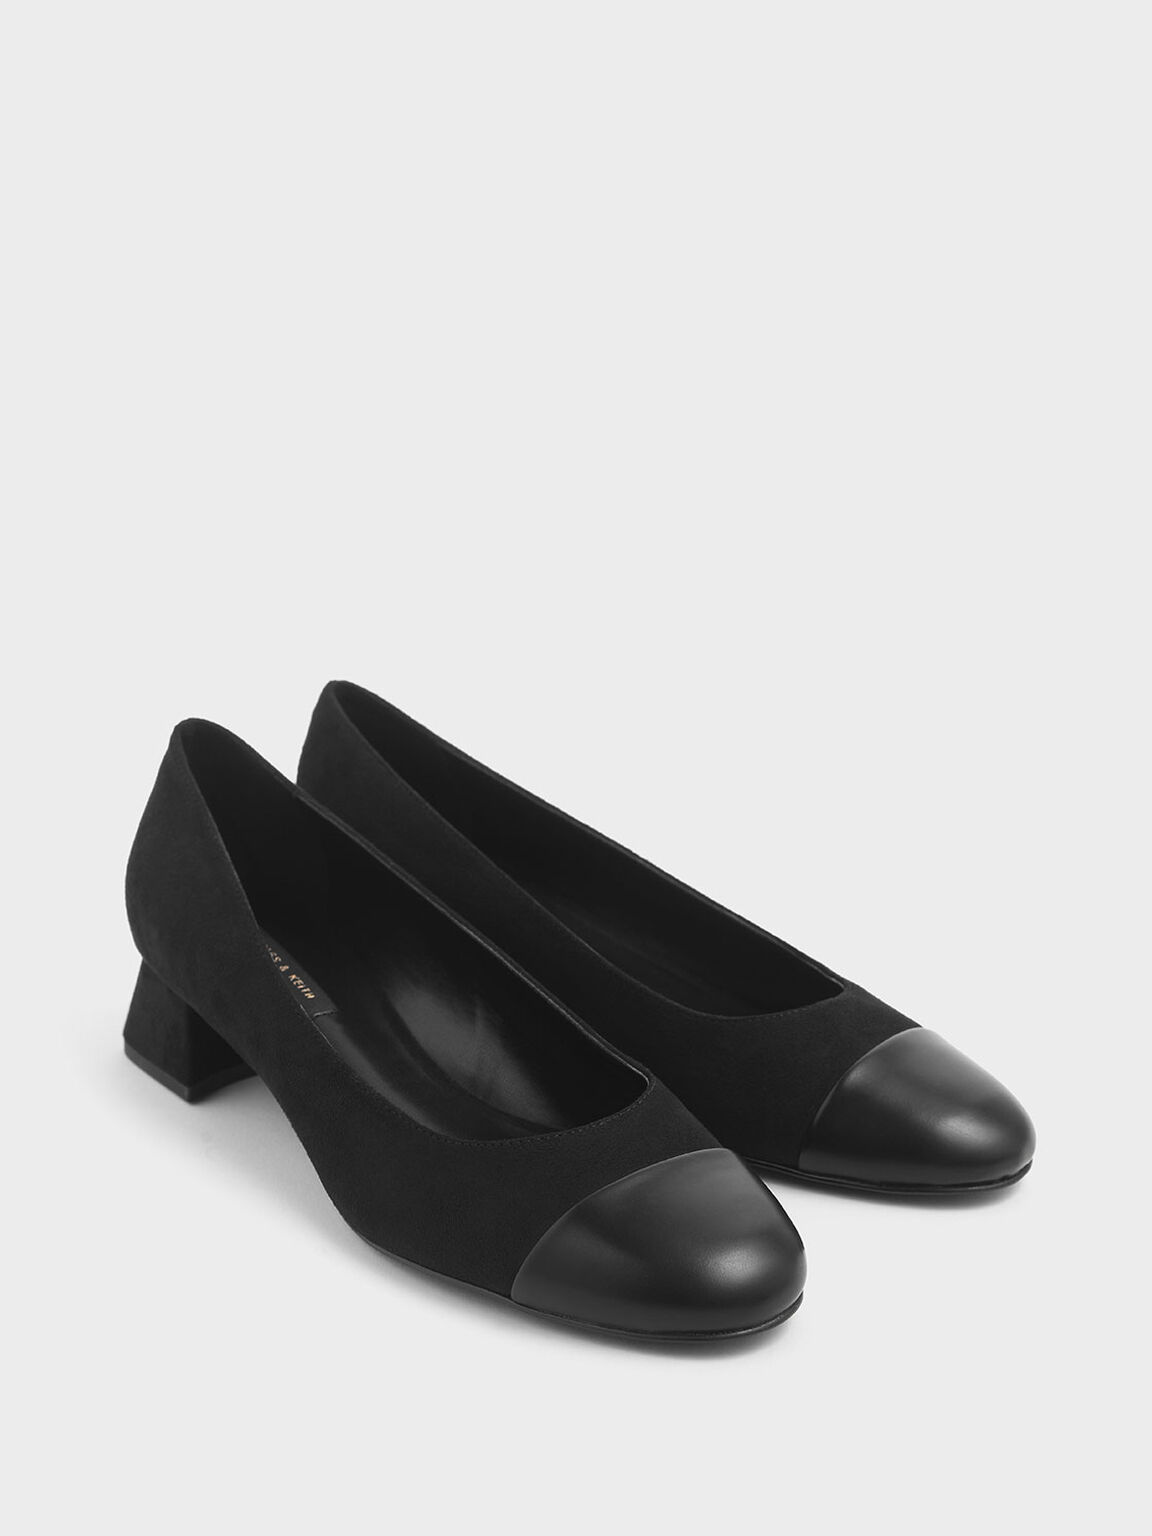 Round Toe Curved Block Heel Textured Pumps, Black, hi-res